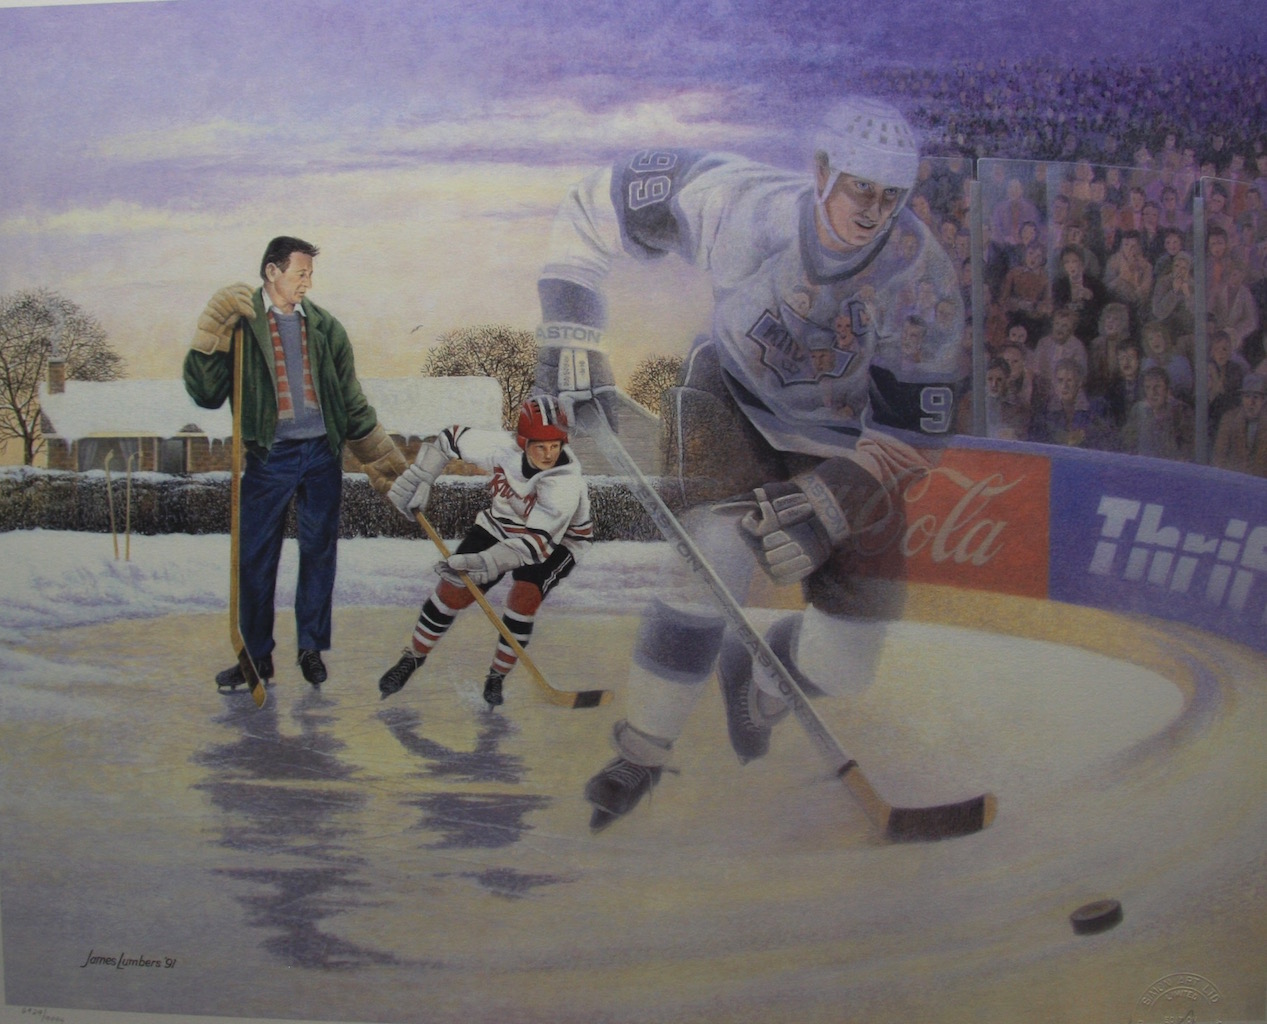 James Lumbers A Boy and His Dream Wayne Gretzky